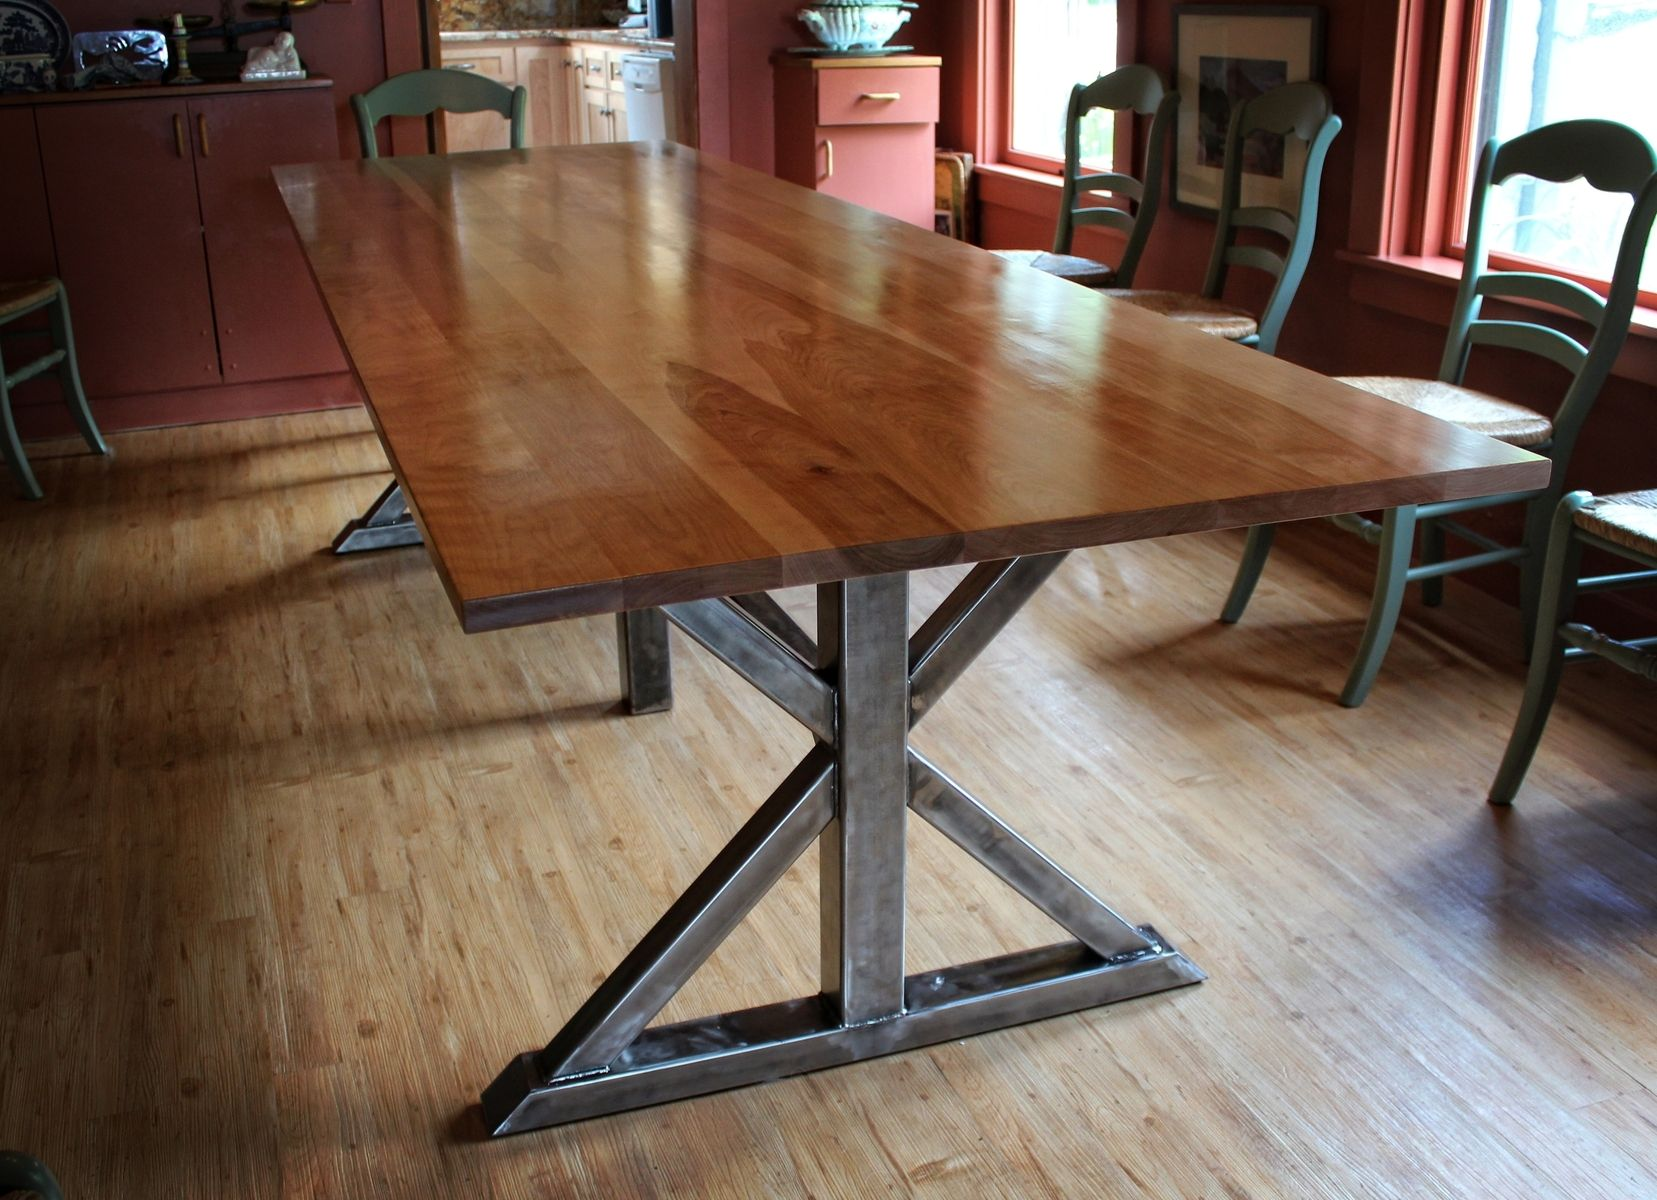 Steel Dining Room Table insurserviceonline